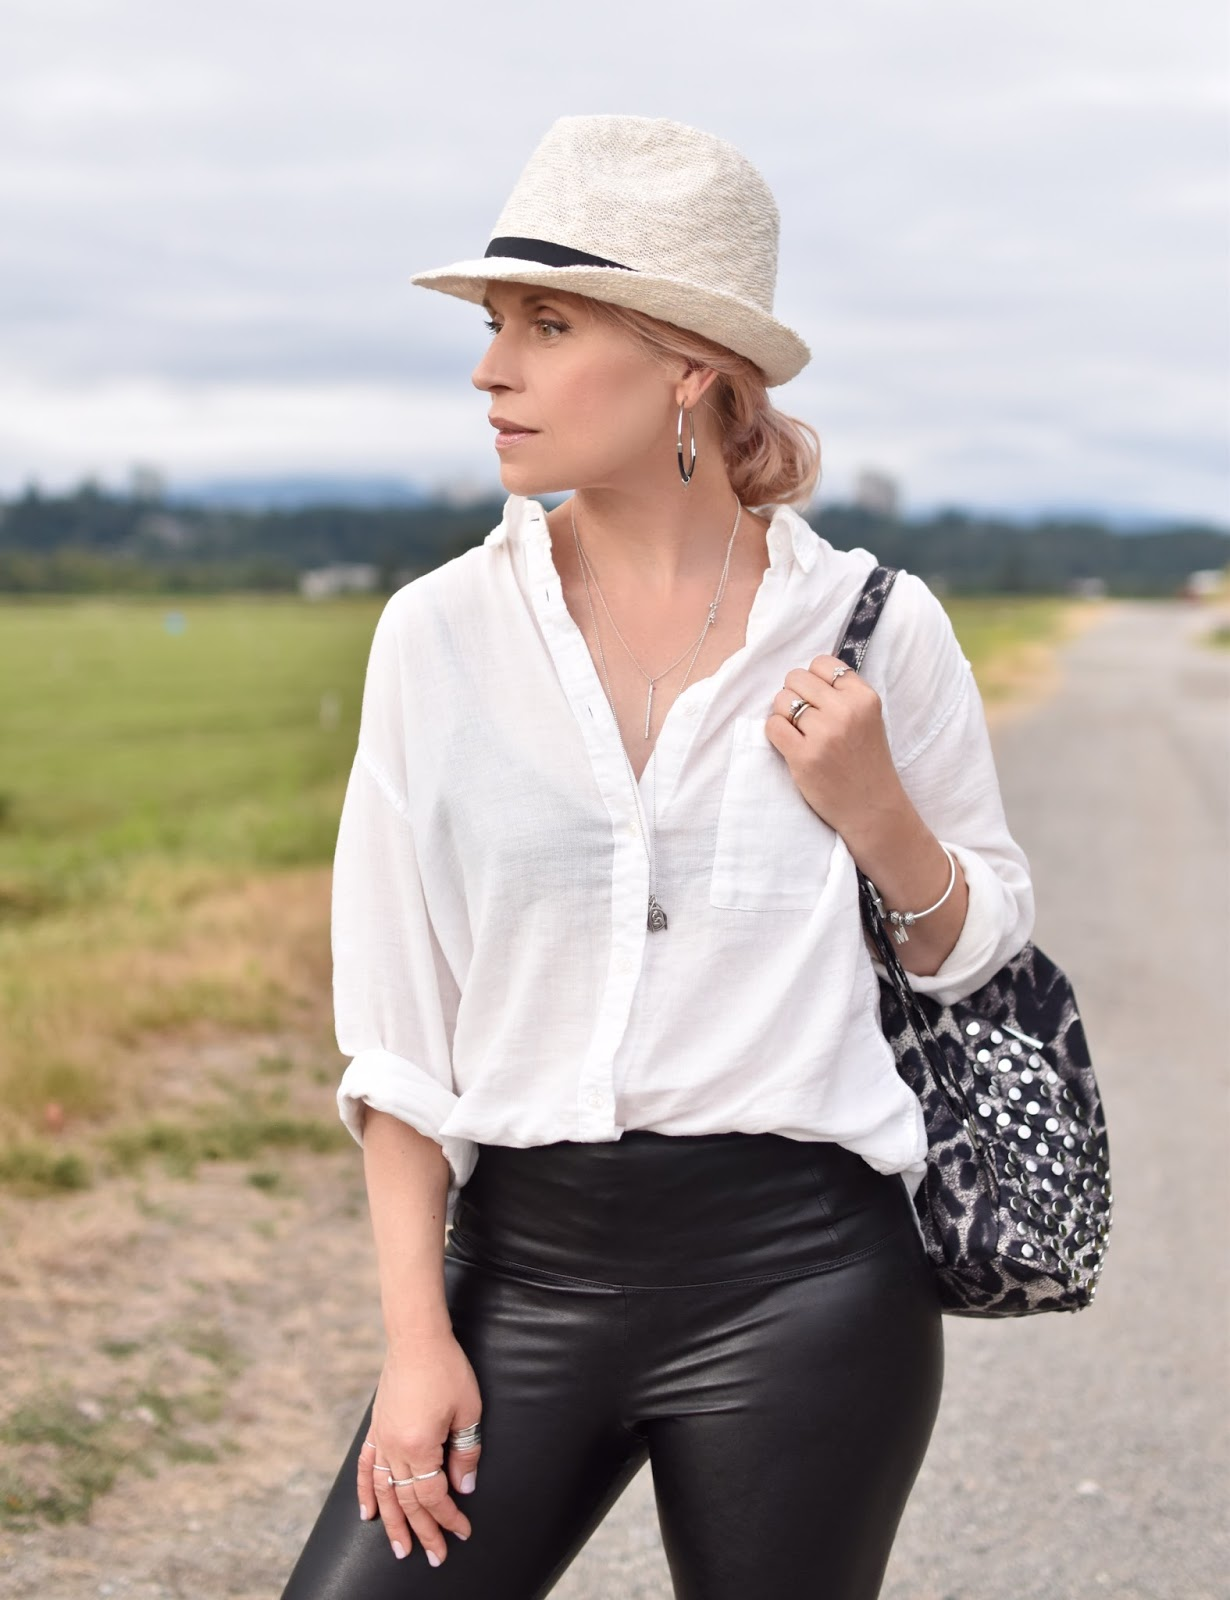 Monika Faulkner personal style inspiration - black vegan leather leggings, oversized white shirt, straw fedora, leopard-patterned backpack